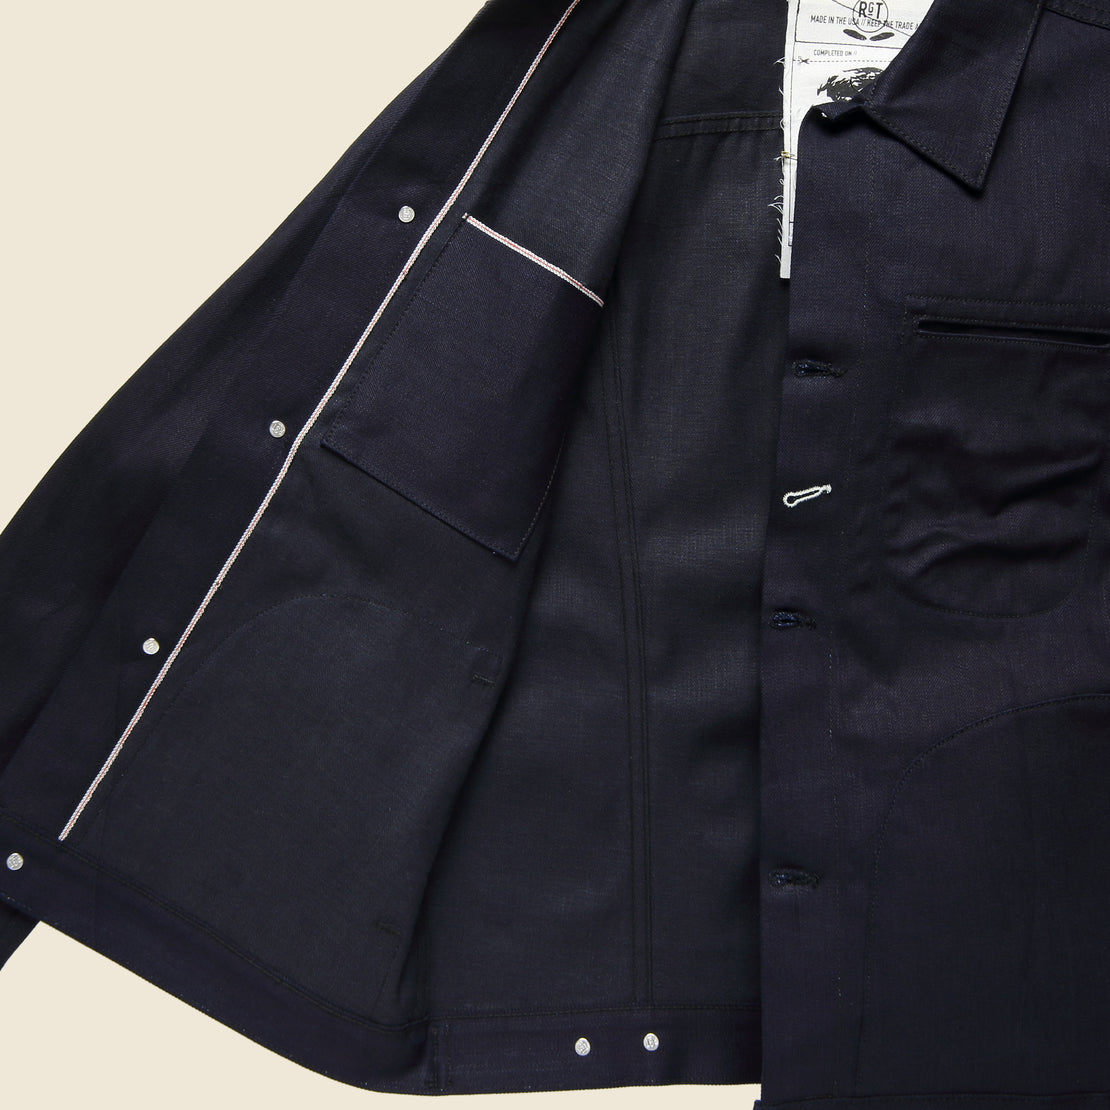 Supply Jacket - Dark Indigo